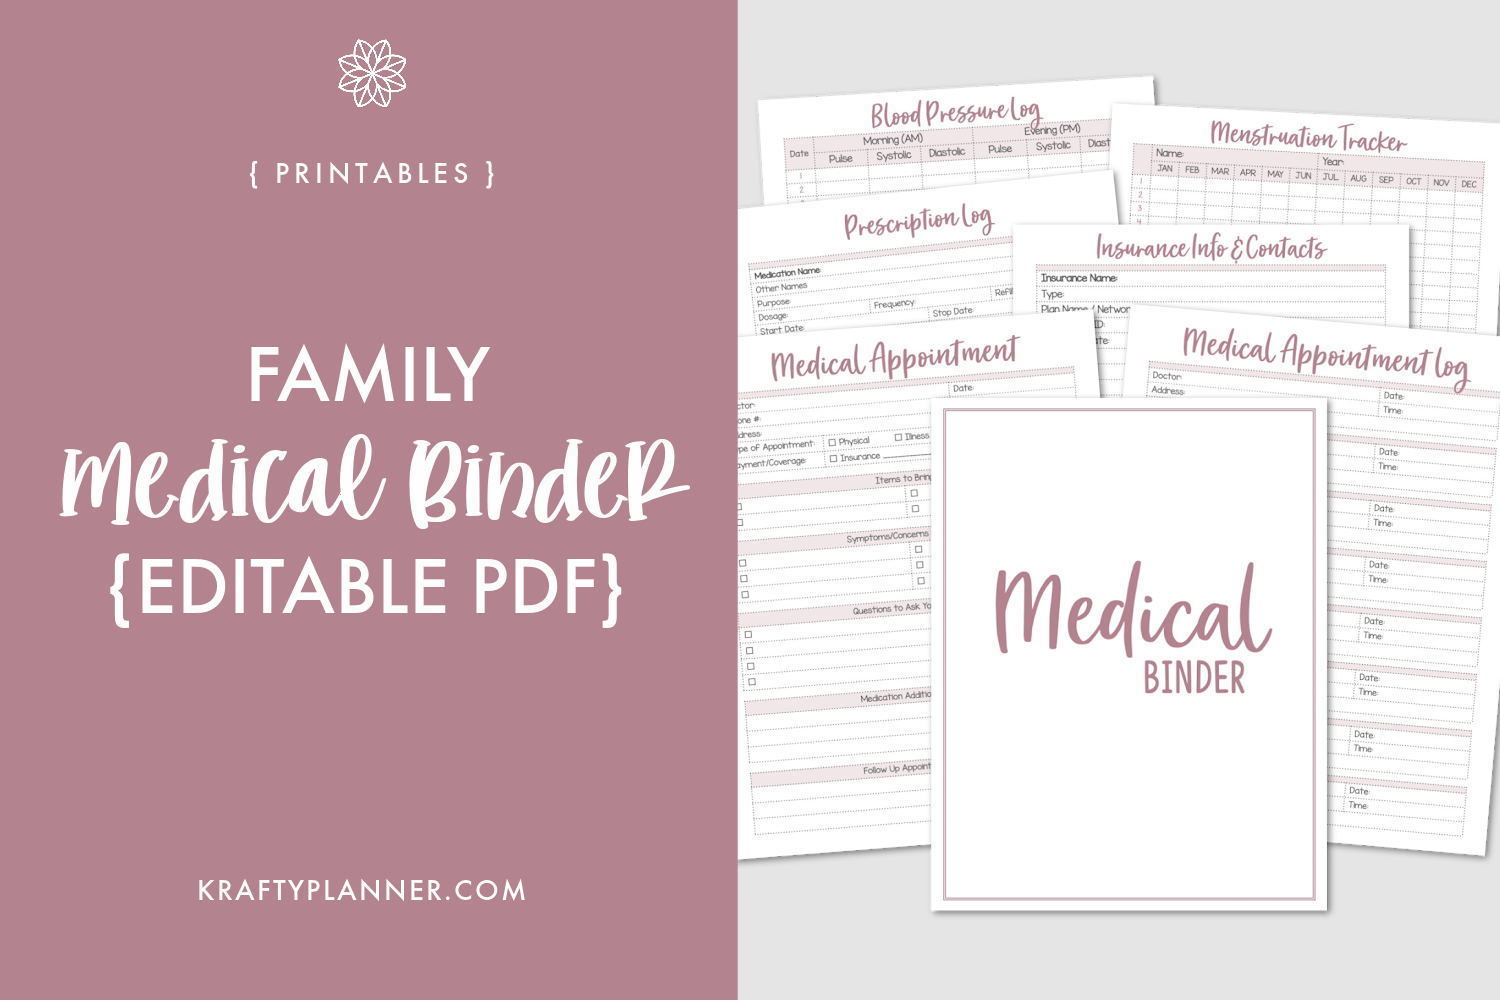 Family Medical Binder {Editable PDF} Main Image.png